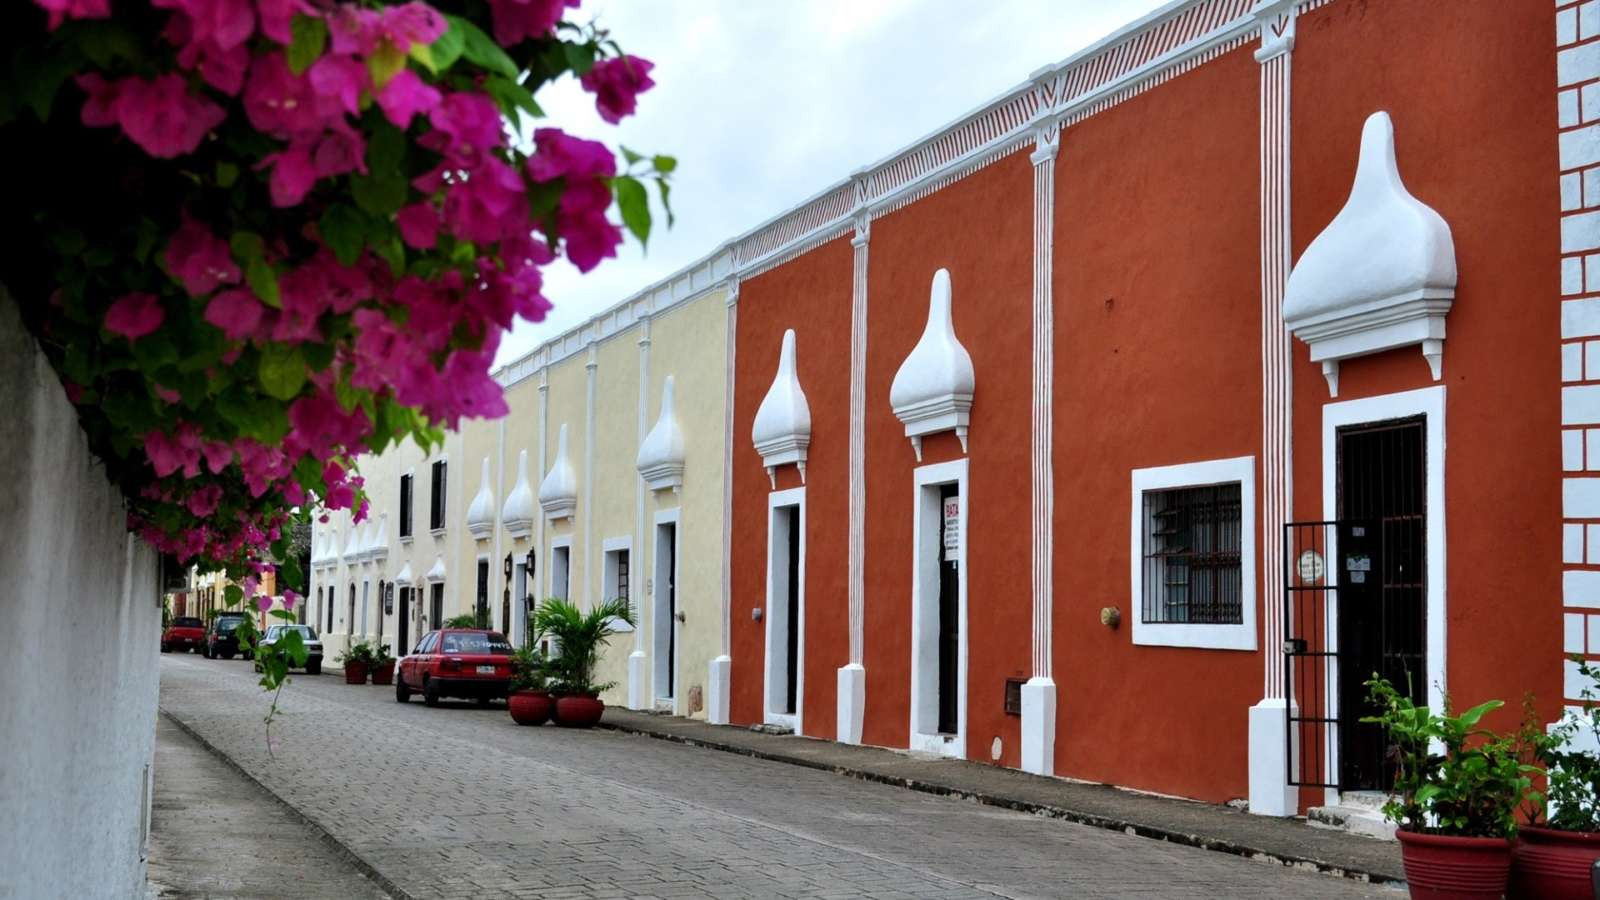 Quiet street in Valladolid Mexico